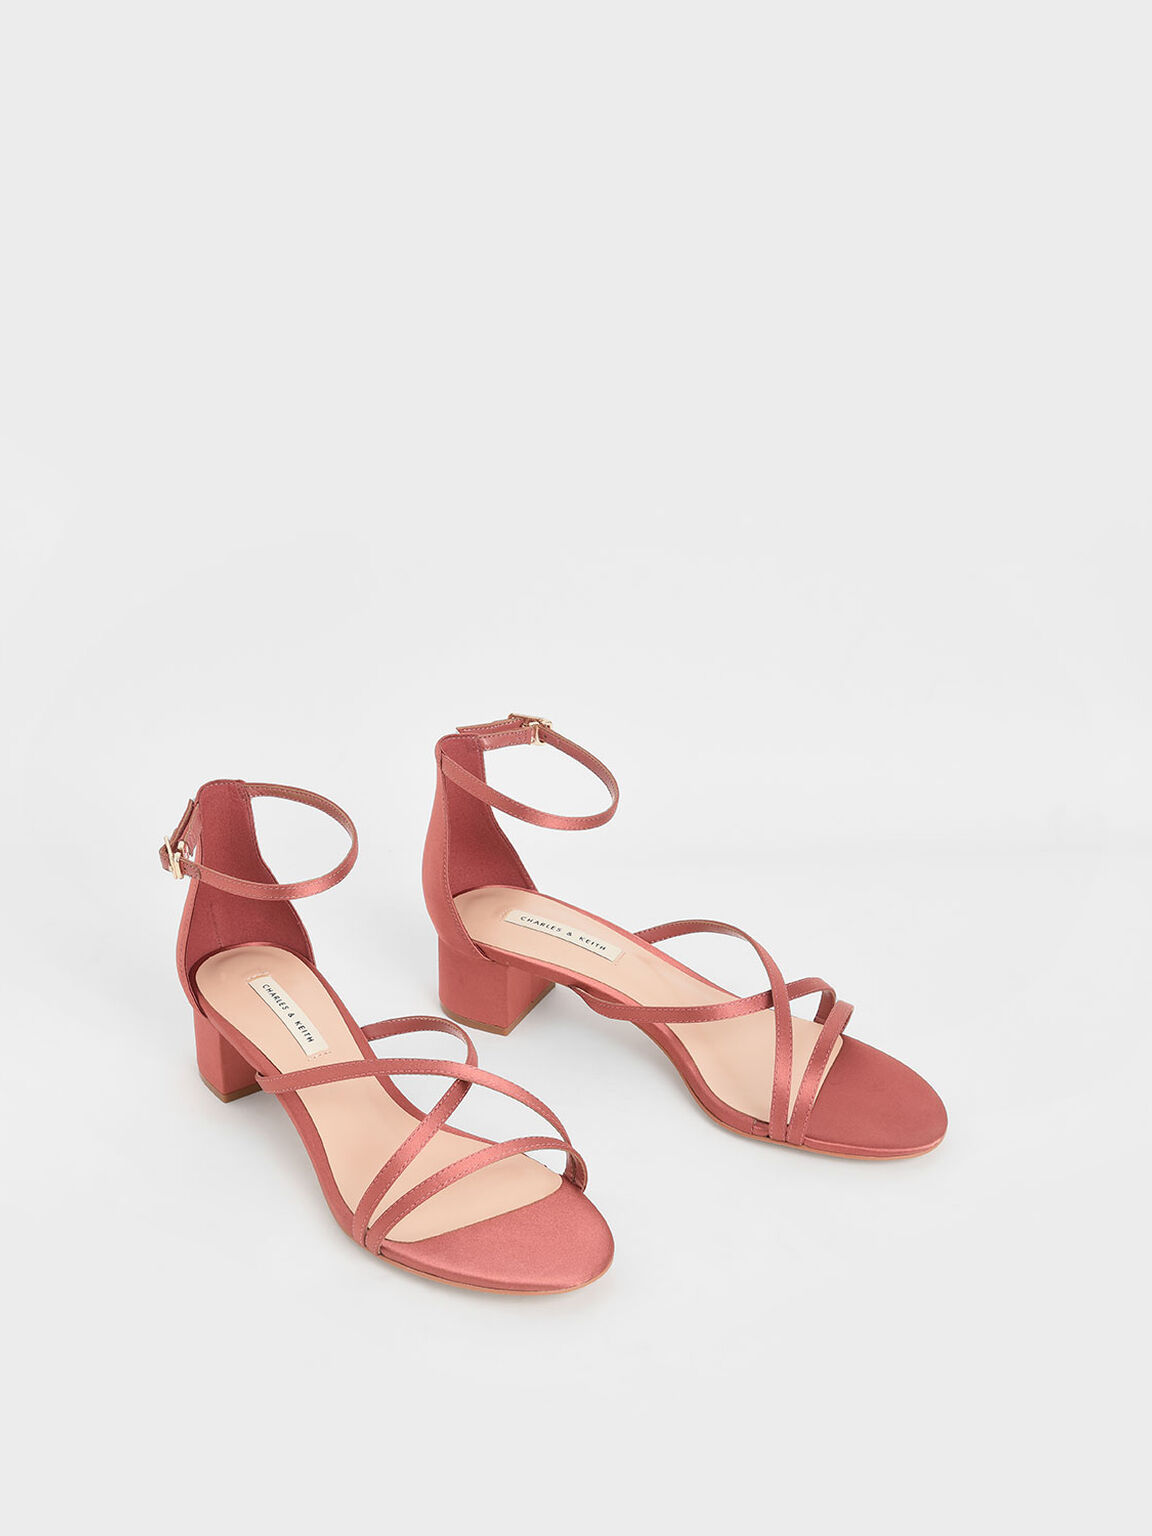 Satin Strappy Heeled Sandals, Pink, hi-res